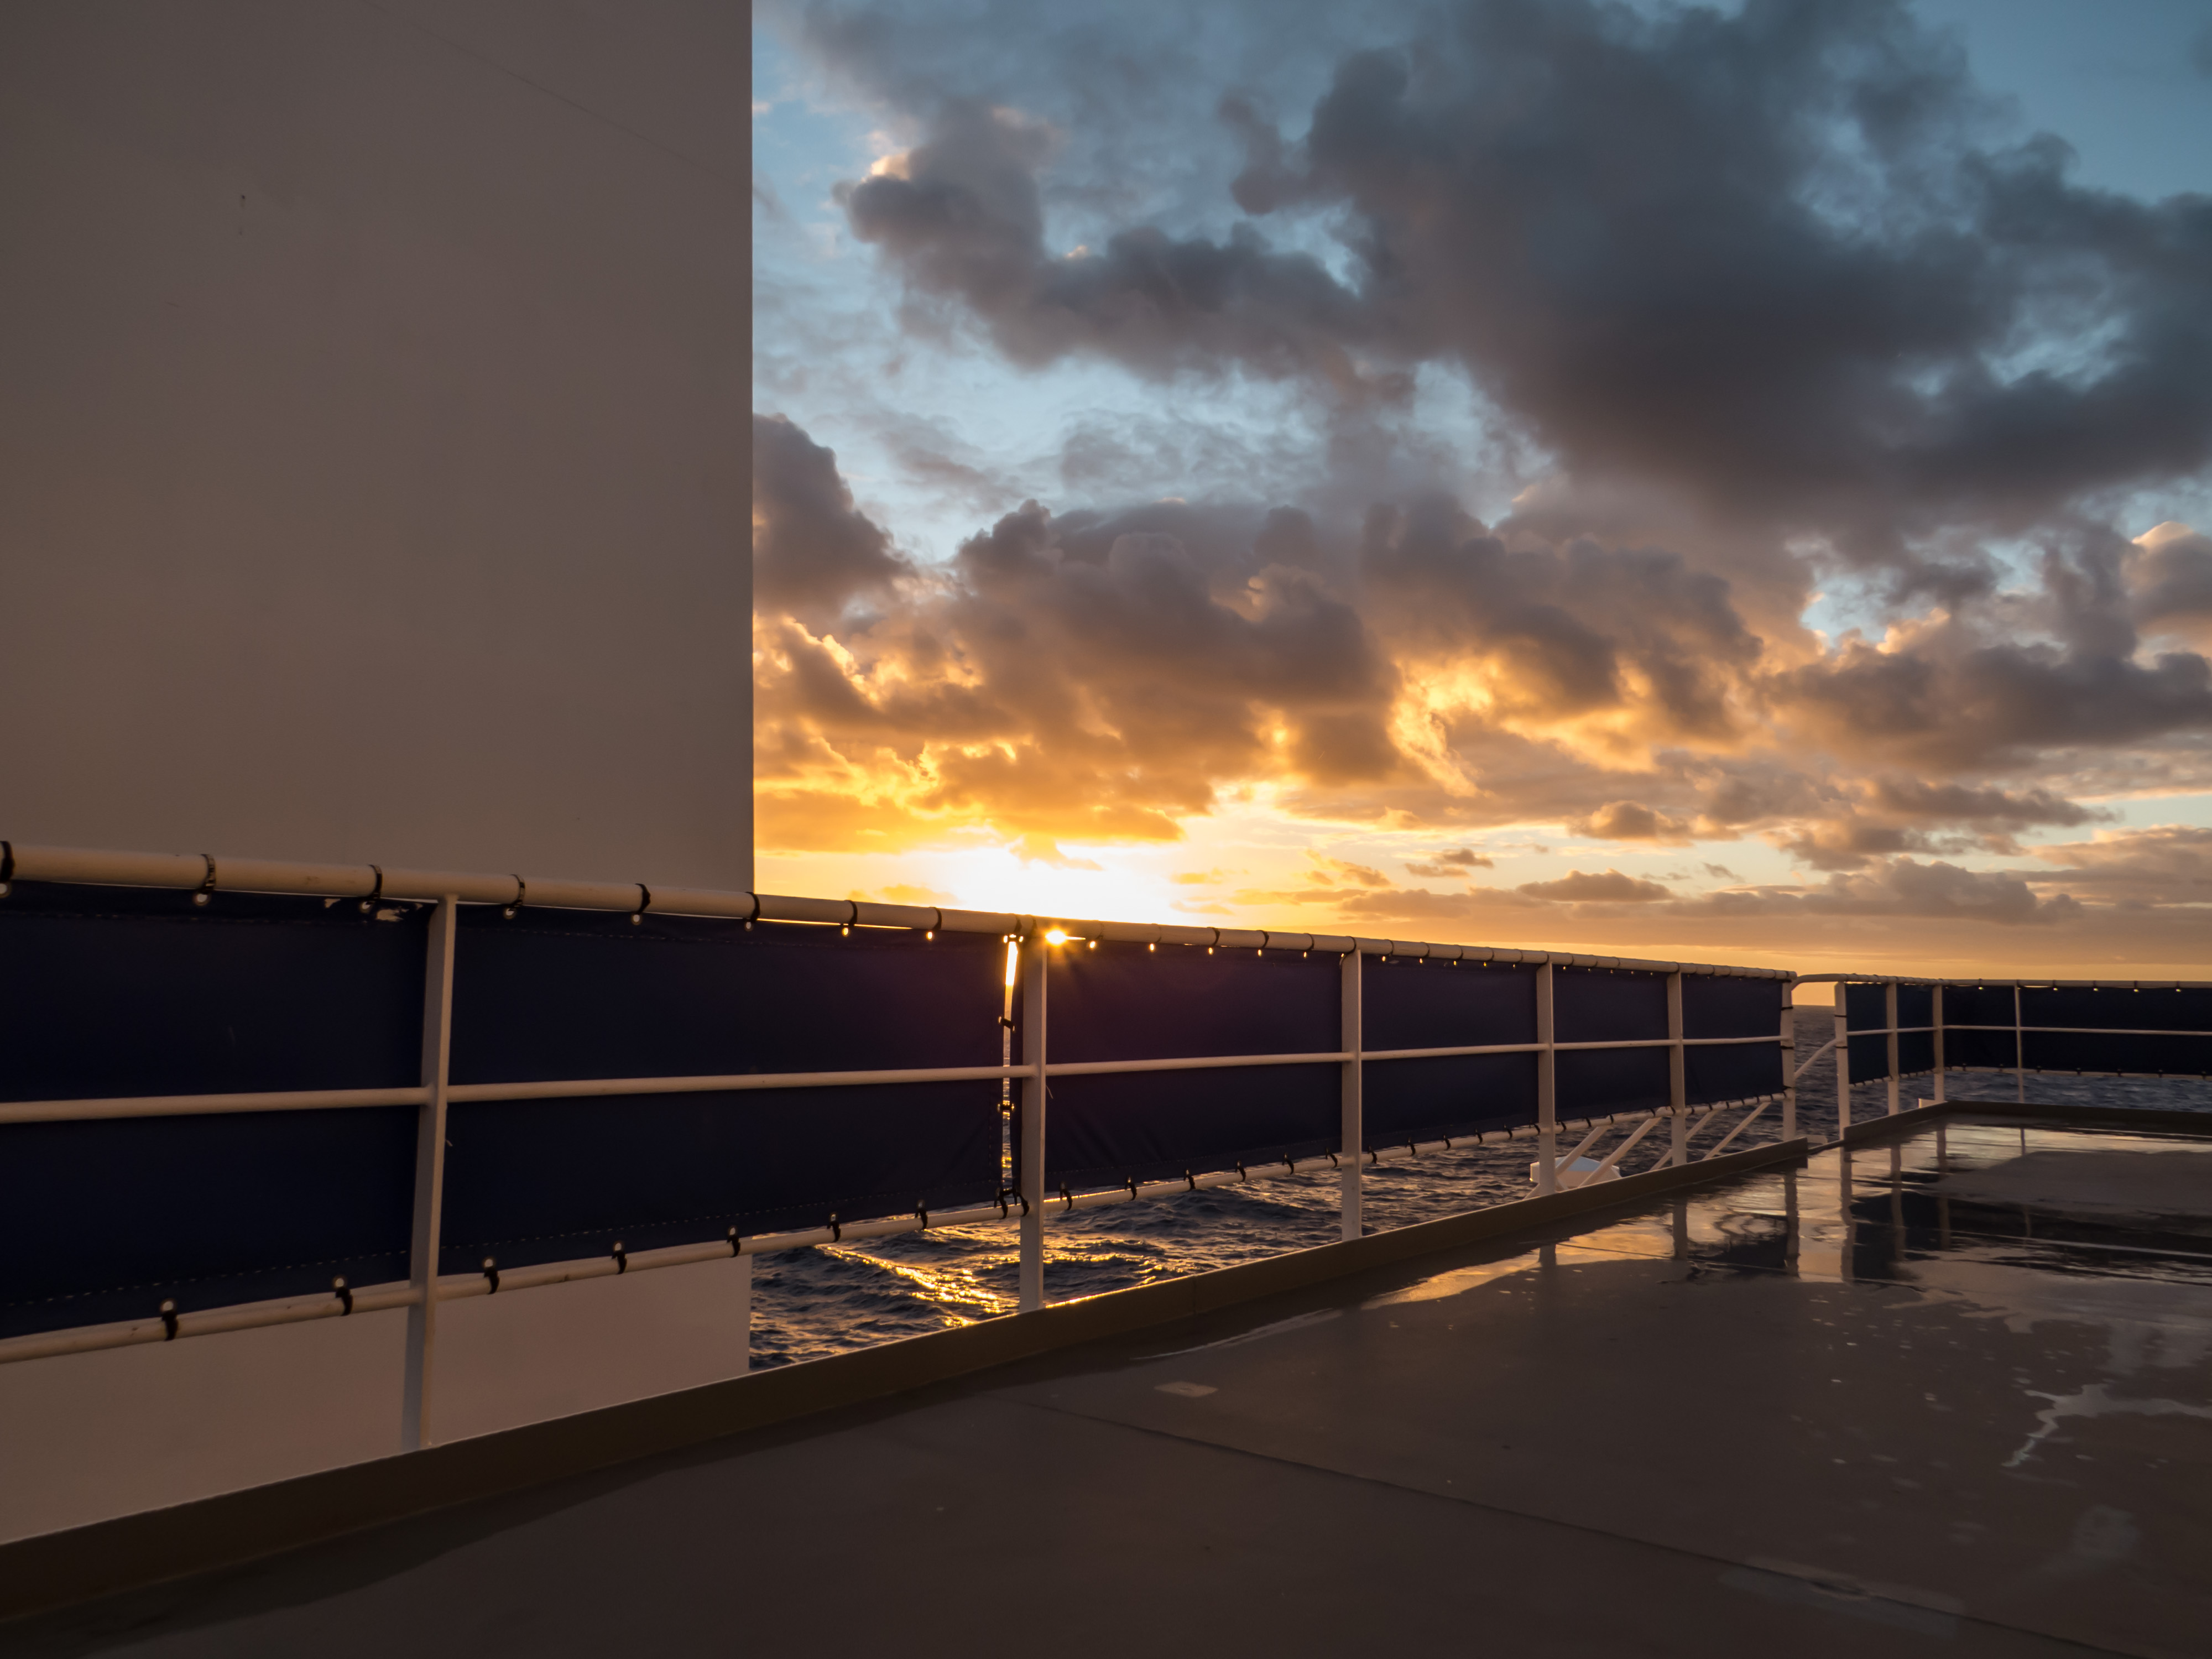 A view to the sunset from ship's deck, Amazing, Ocean, Vibrant, Sunshine, HQ Photo